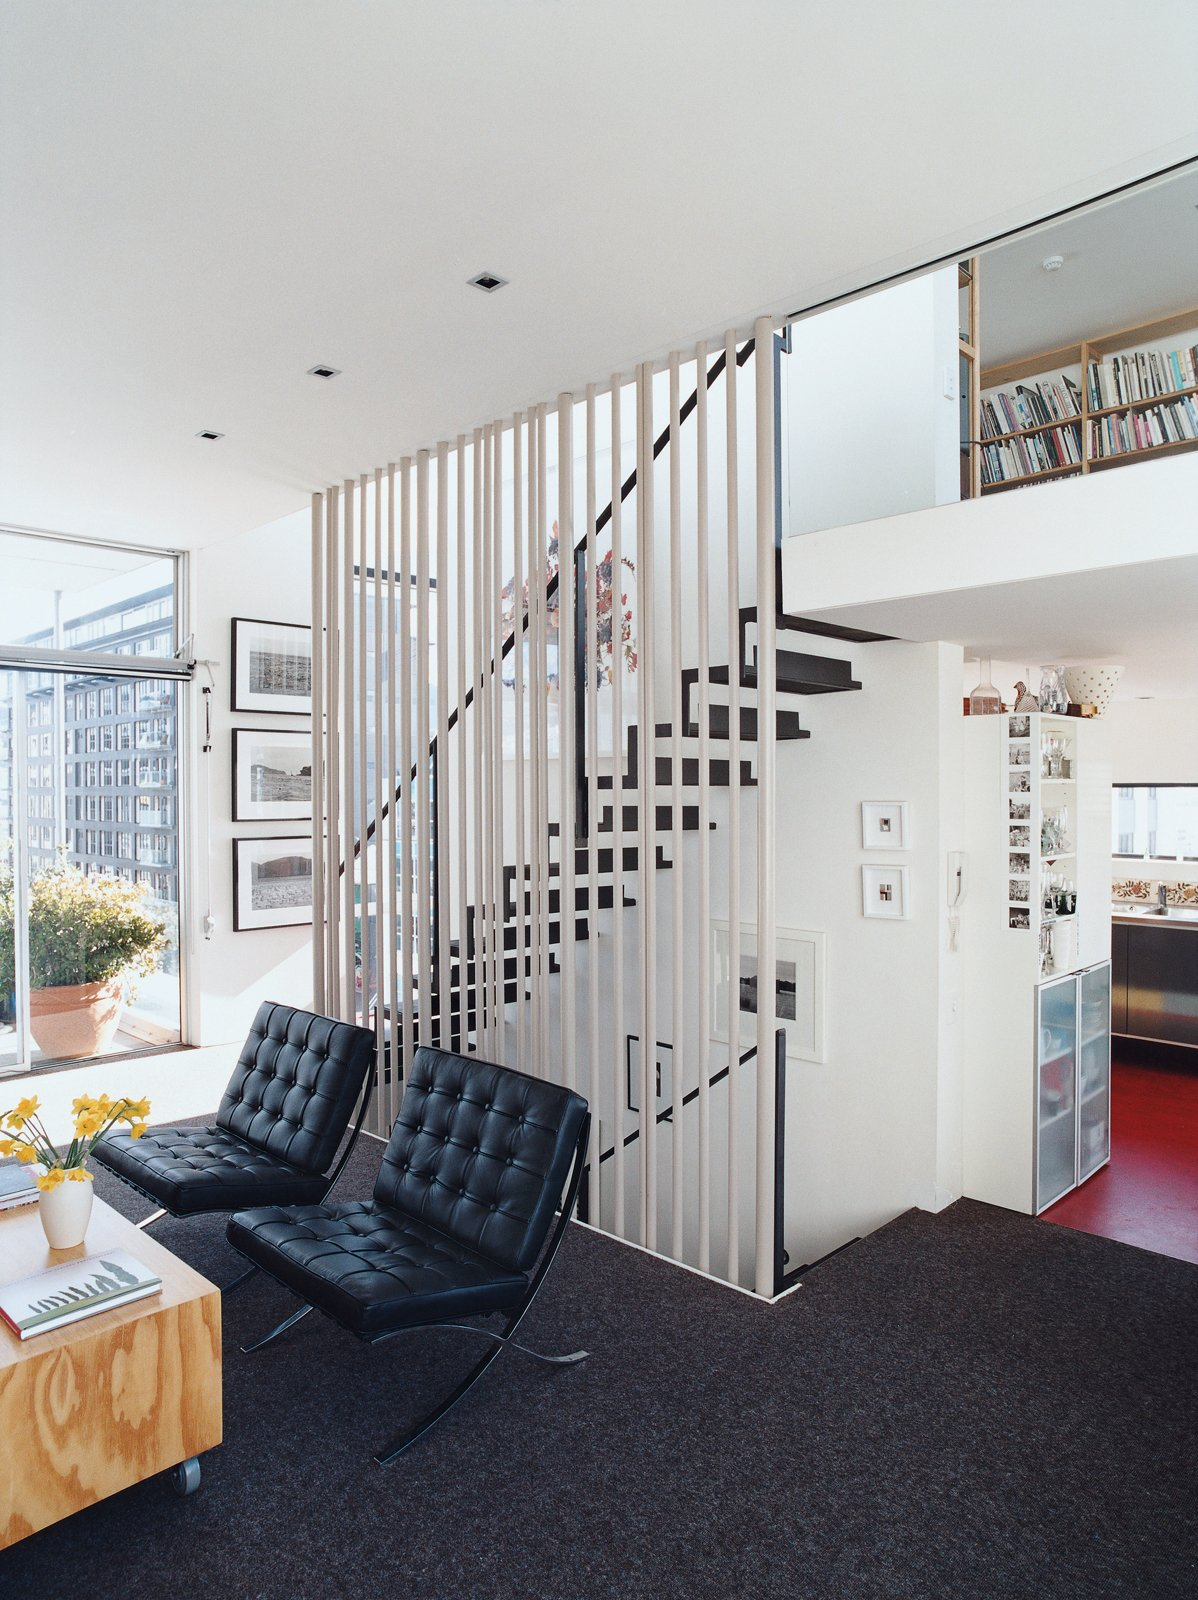 Living Room and Chair A floating steel staircase ties the living area and loft together. Variegated steel tubes provide graphic punch while maintaining the apartment's airy and open feeling.  Clever Loft Spaces for Small Places by Diana Budds